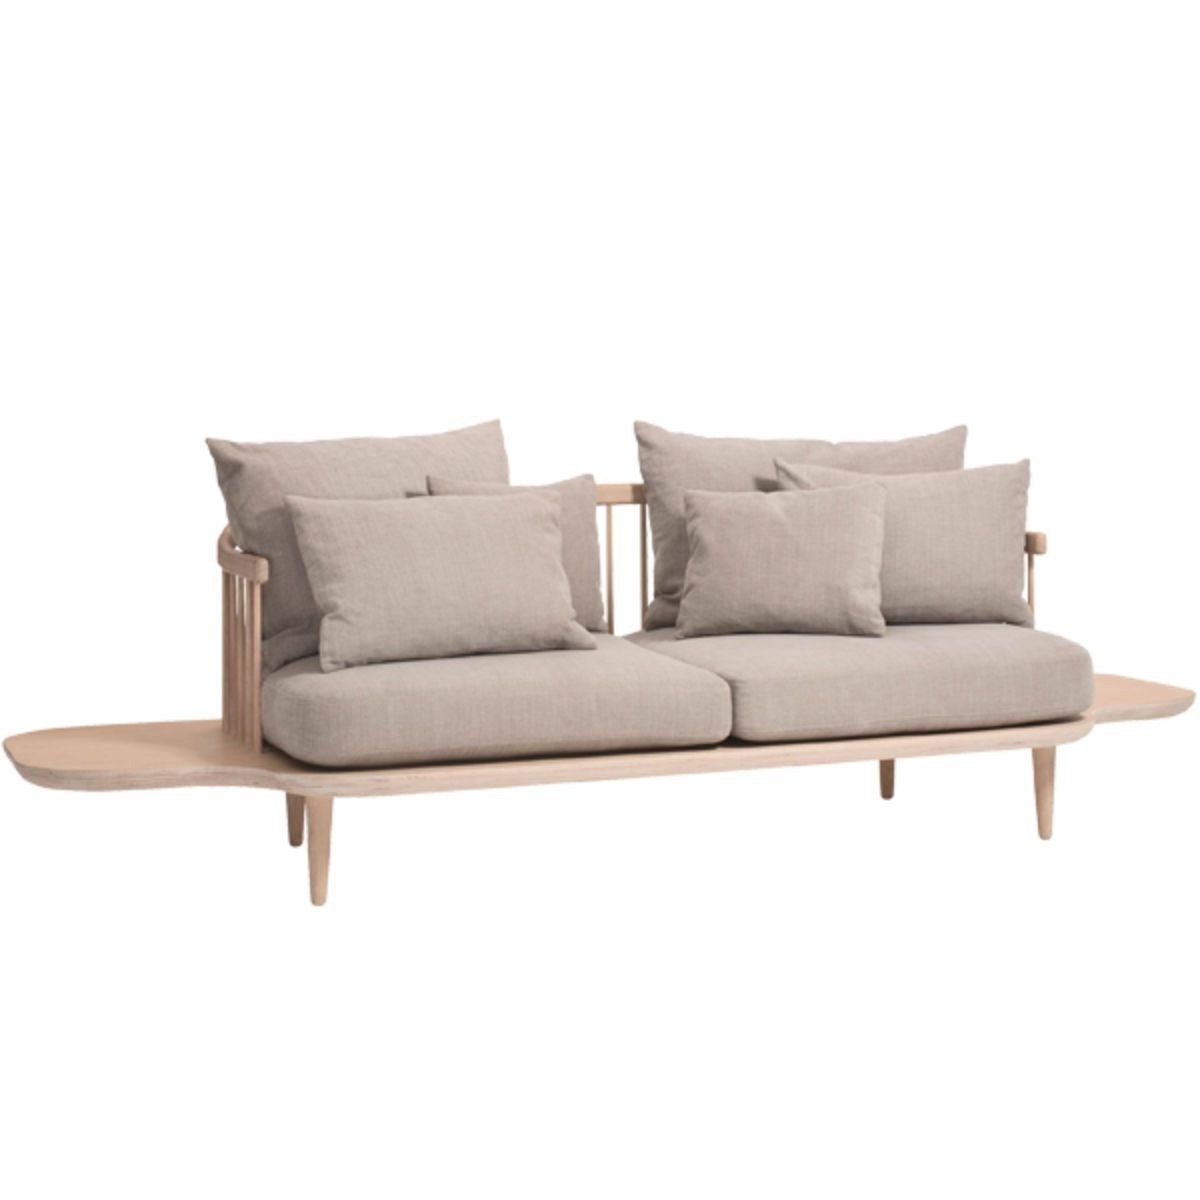 &Tradition Fly Sofa SC3 white oiled oak base hot madison 094